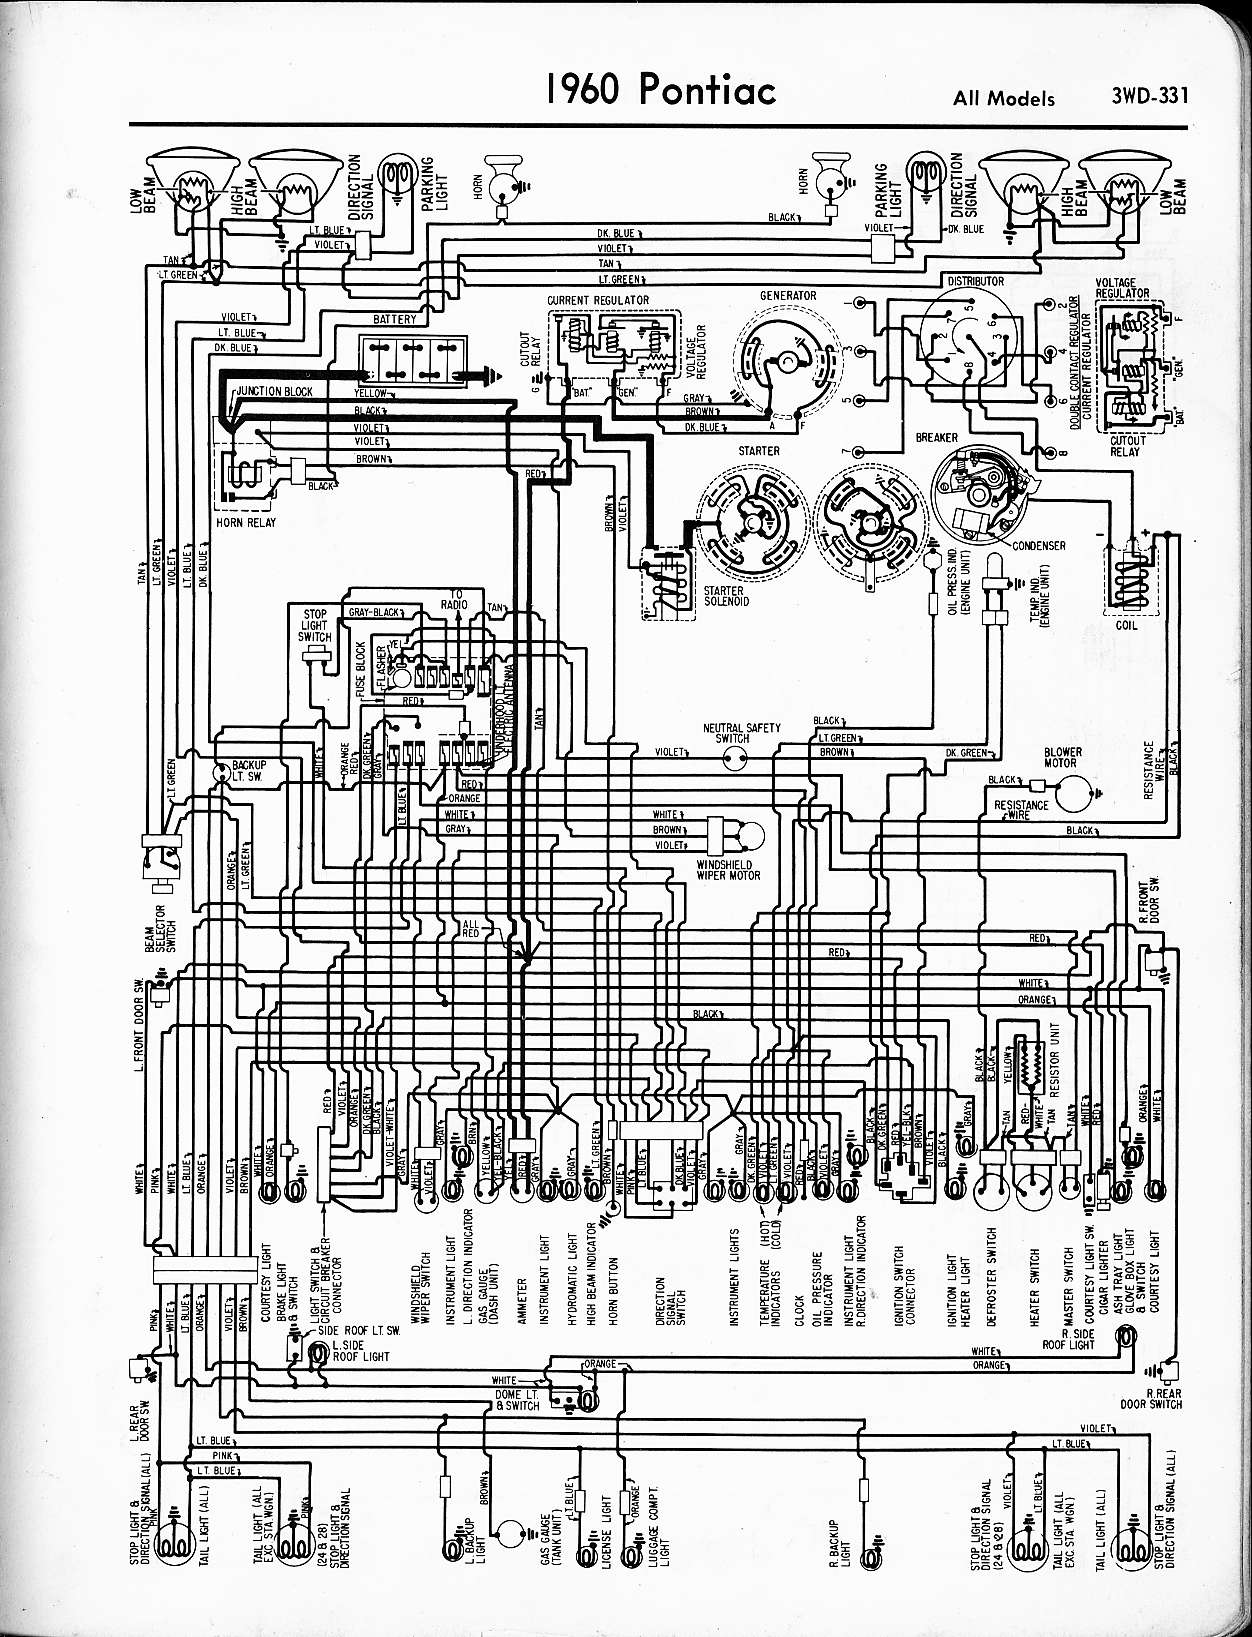 1961 Chevy Dash Wiring Diagram Free Download Another Diagrams 1965 Pickup Picture 1971 Gto Will Be A Thing U2022 Rh Exploreandmore Co Uk 1964